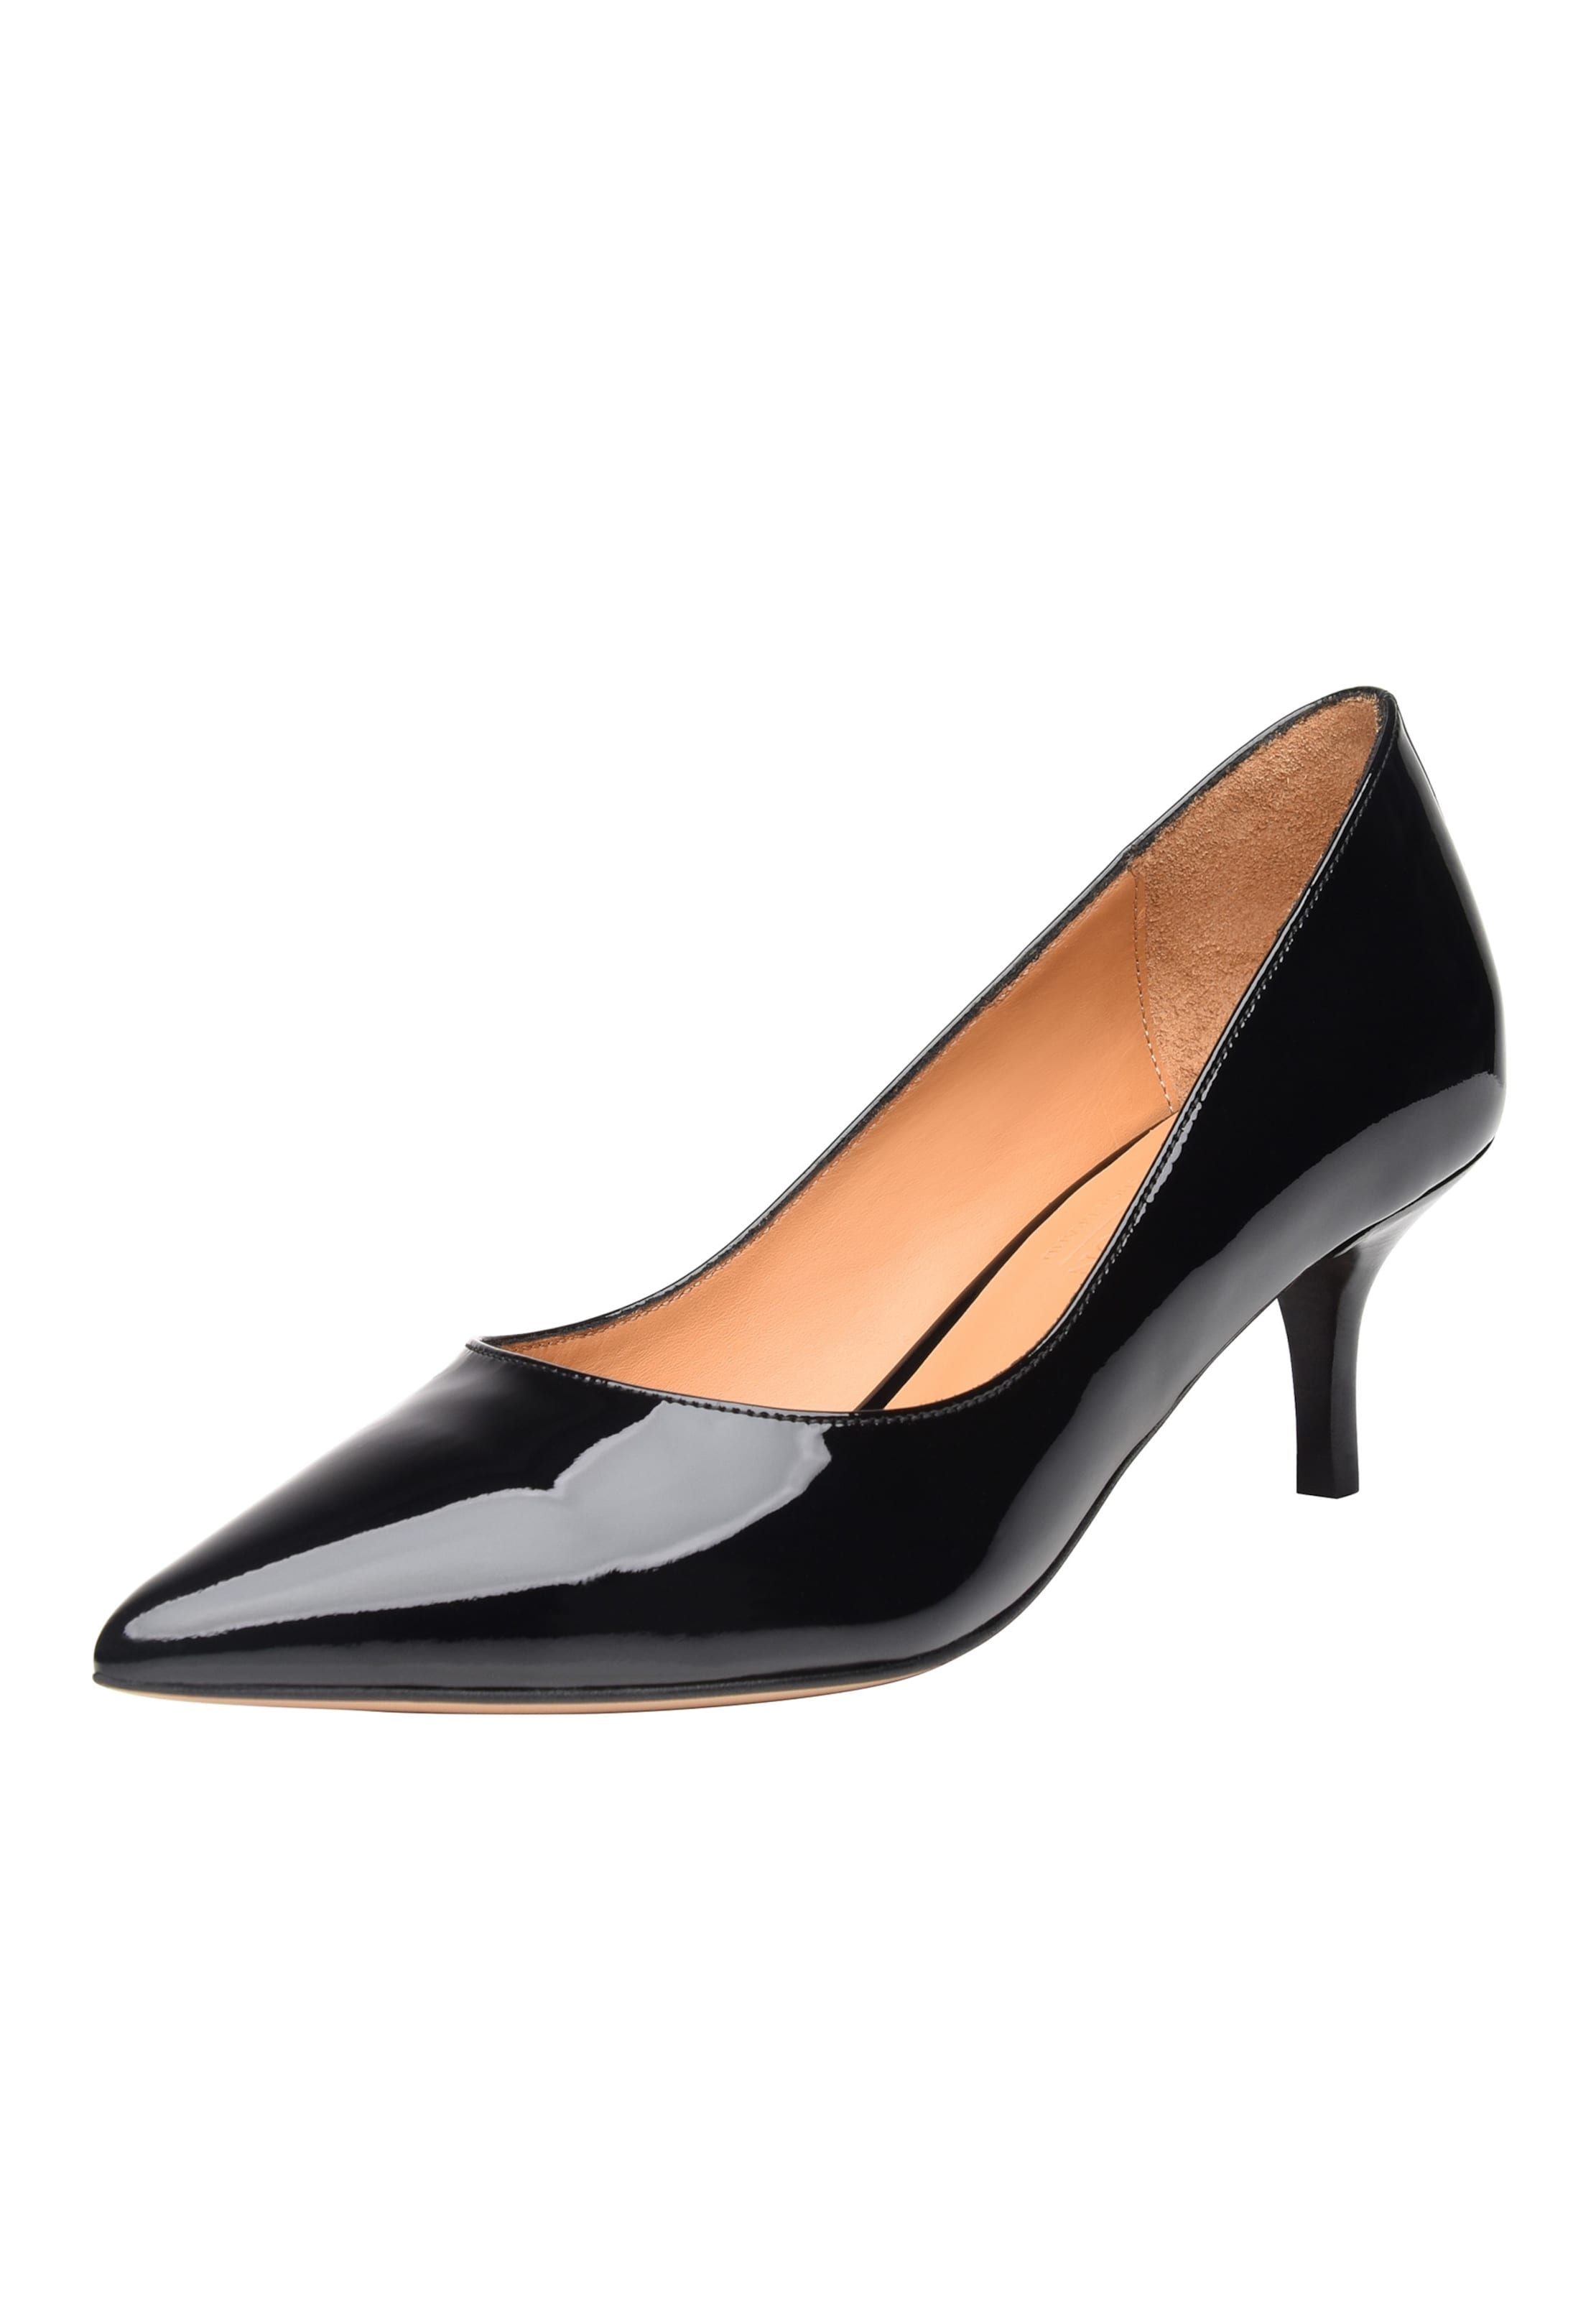 Shoepassion 'no1510' Pumps Schwarz Pumps Shoepassion In EIWH9YeD2